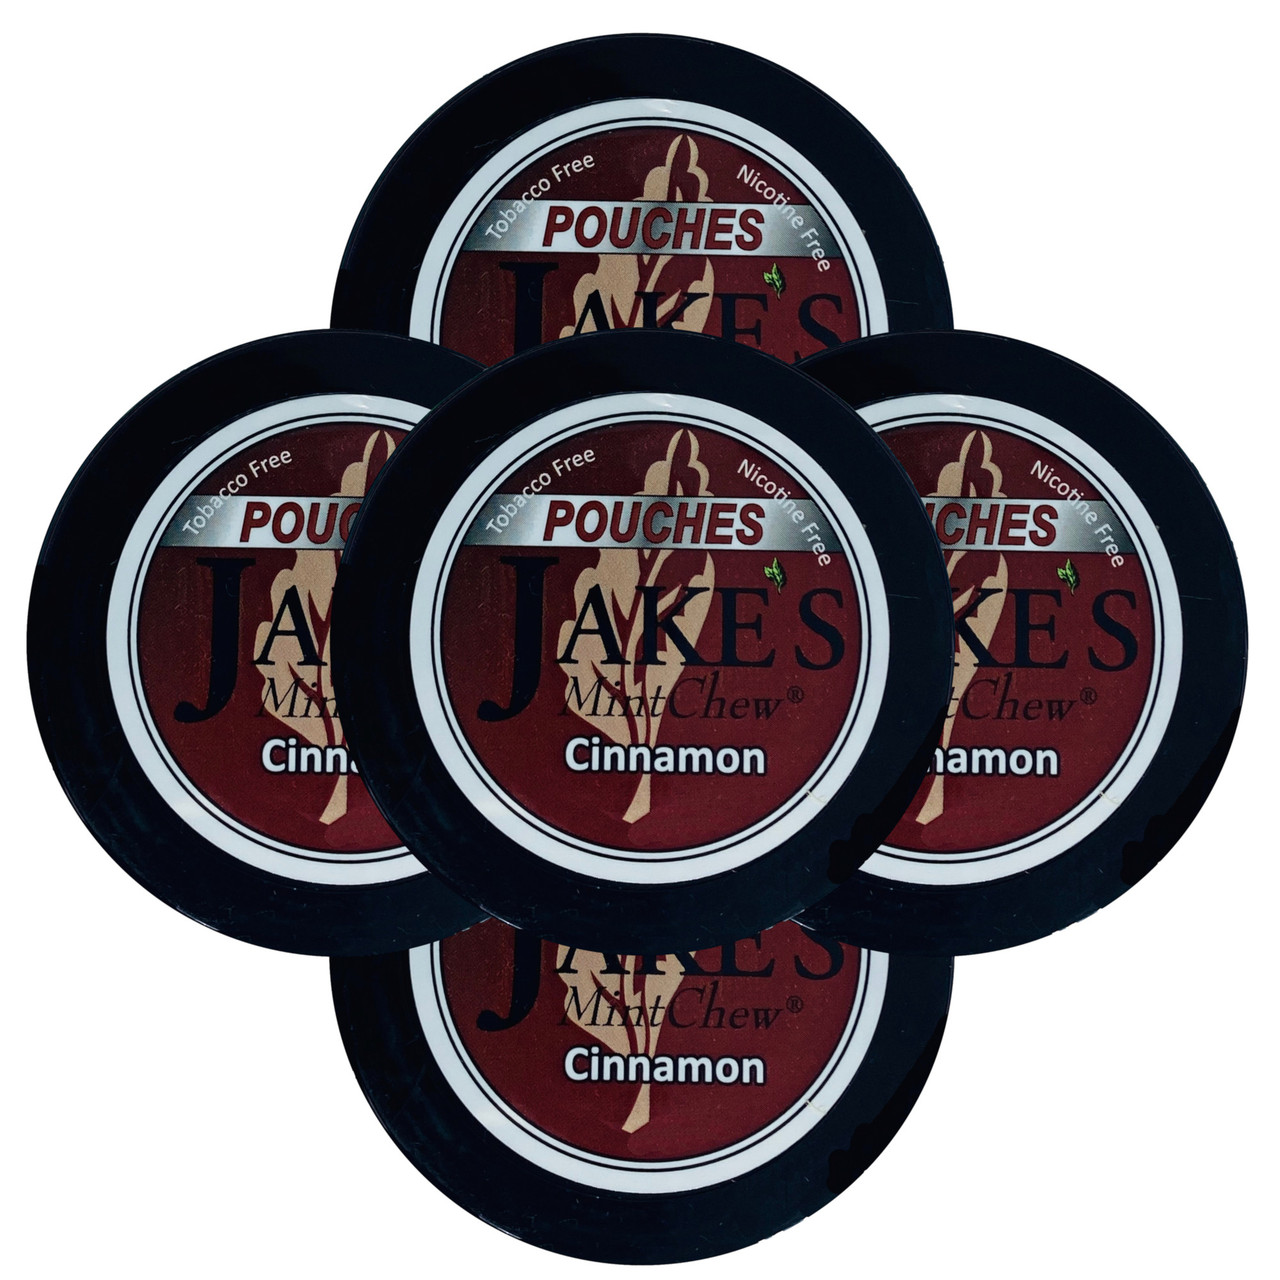 Jake's Mint Chew Pouches Cinnamon 5 Cans